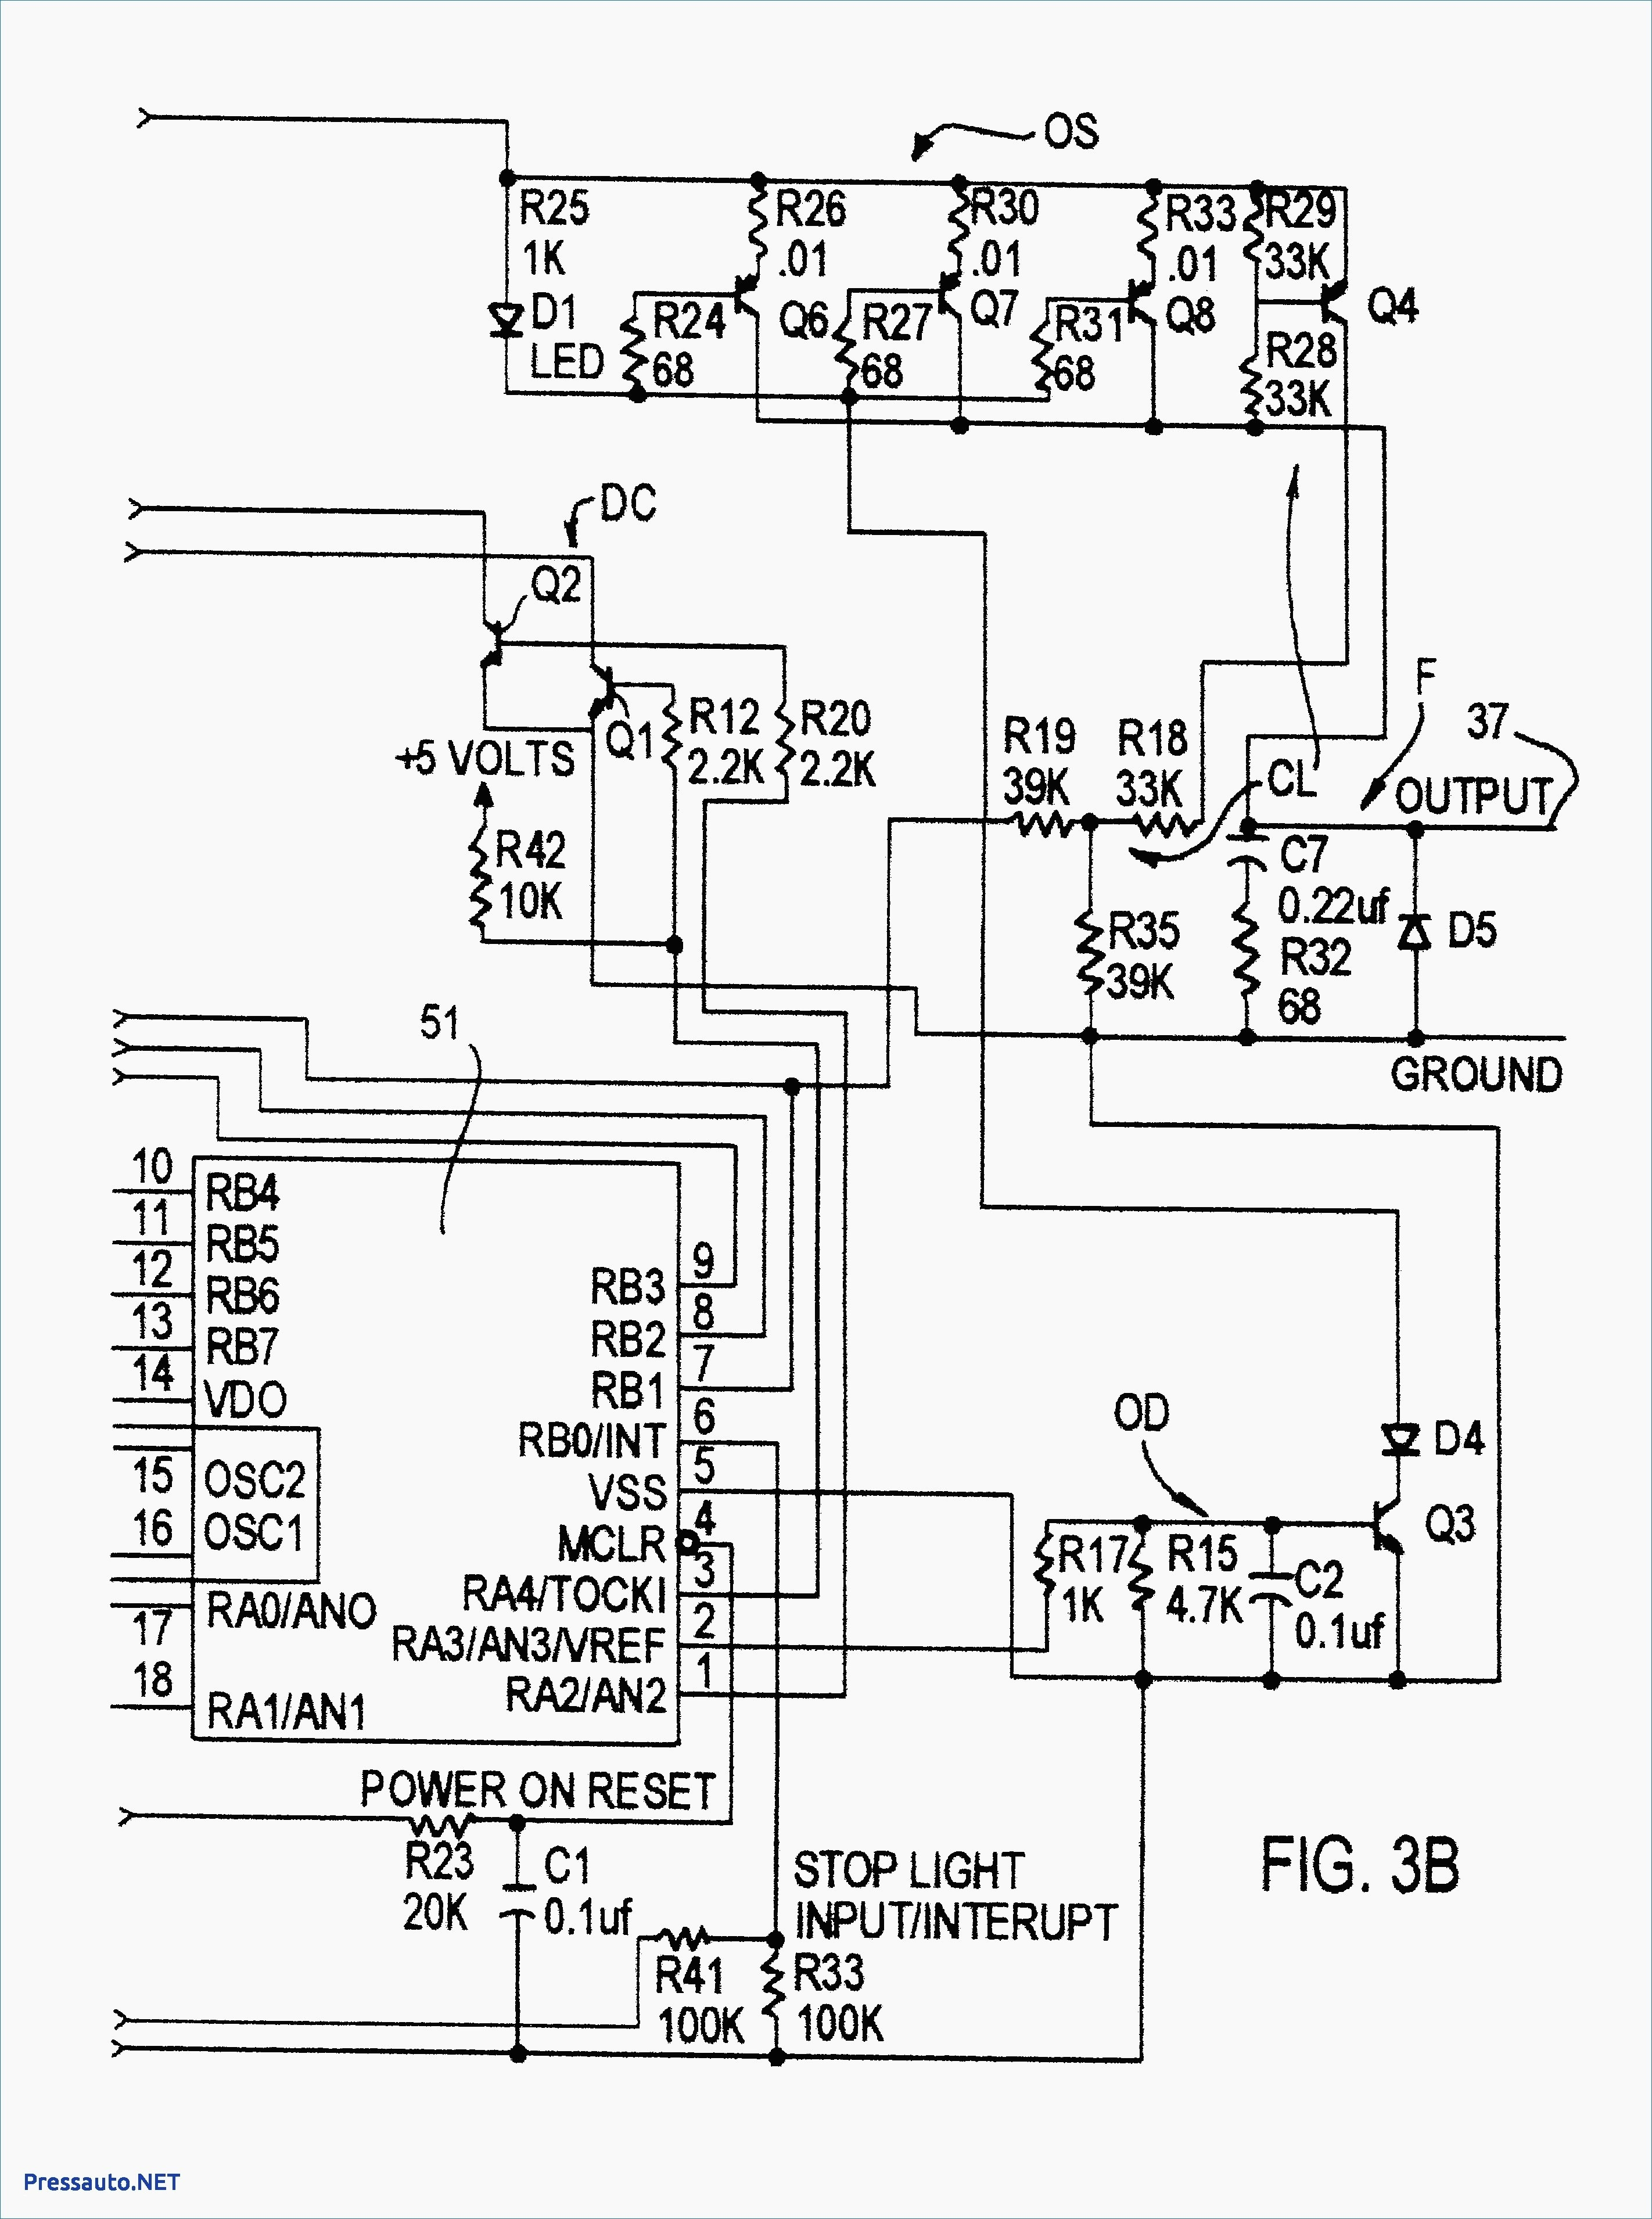 [DIAGRAM] Enclosed Cargo Trailer Wiring Diagram FULL